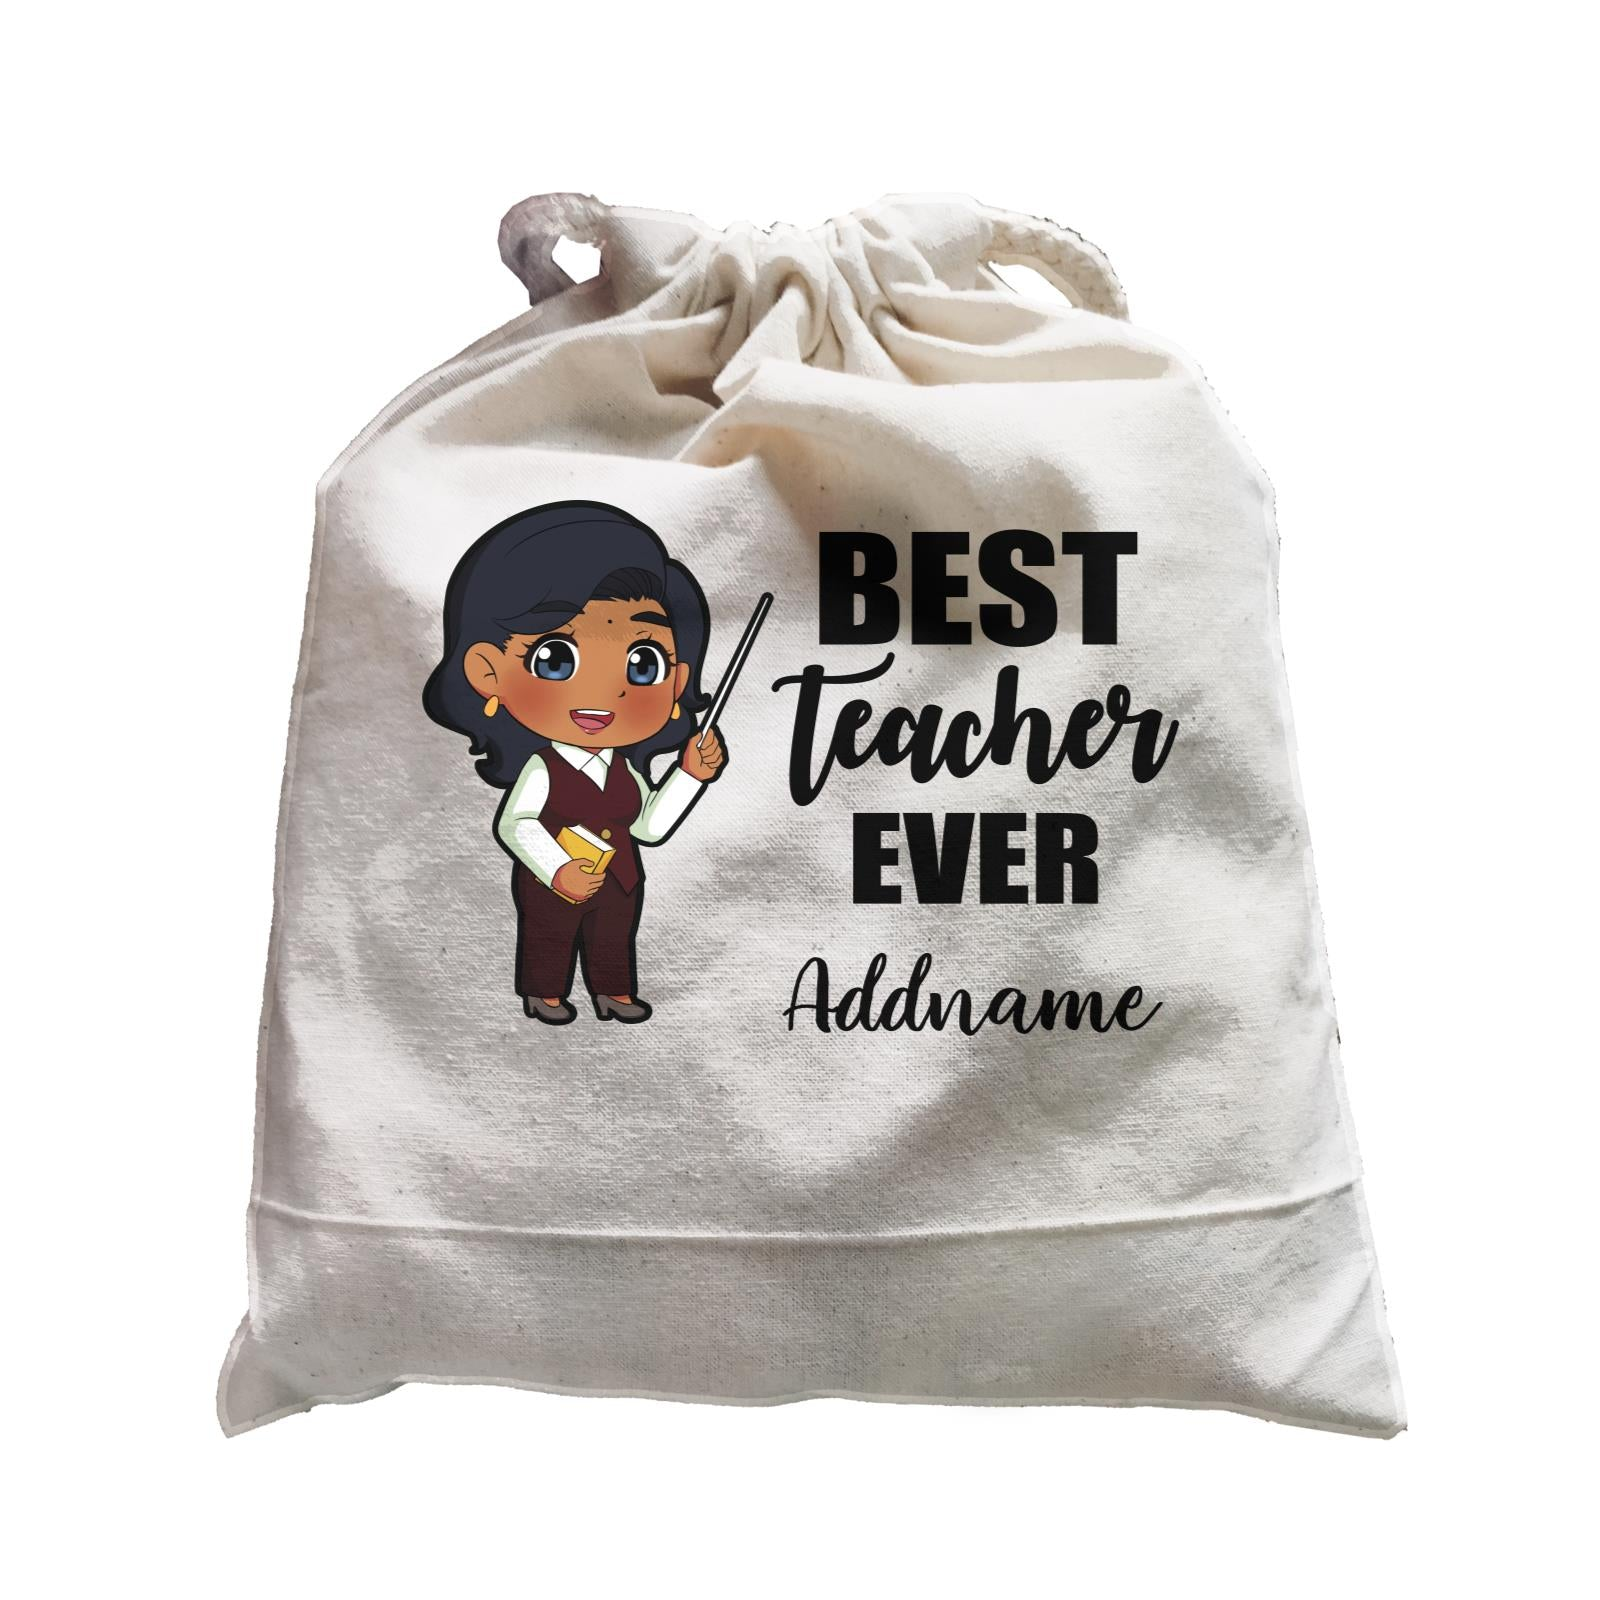 Chibi Teachers Indian Woman Best Teacher Ever Addname Satchel